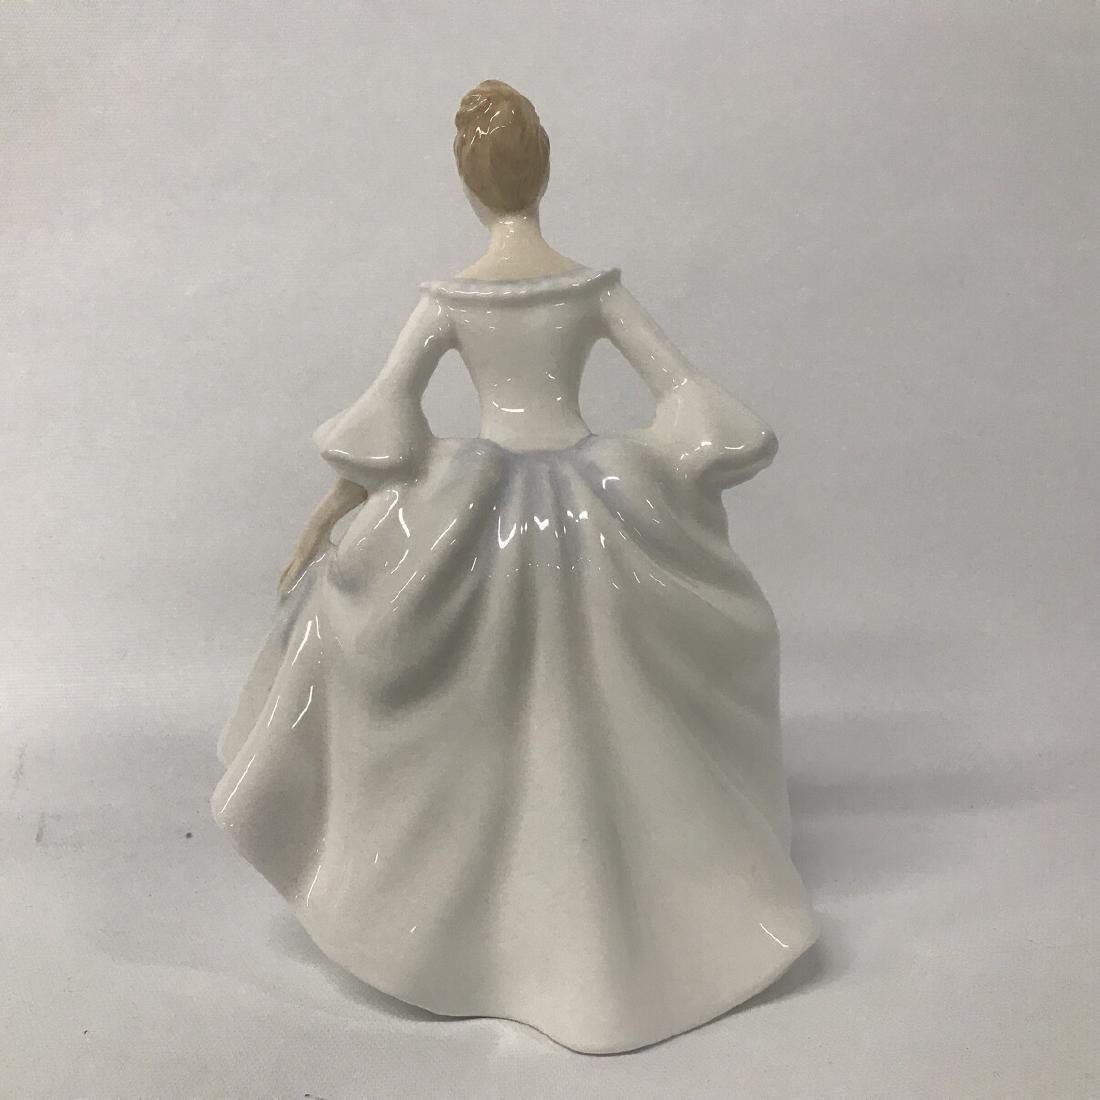 Alyssa Royal Doulton Figurine - 5